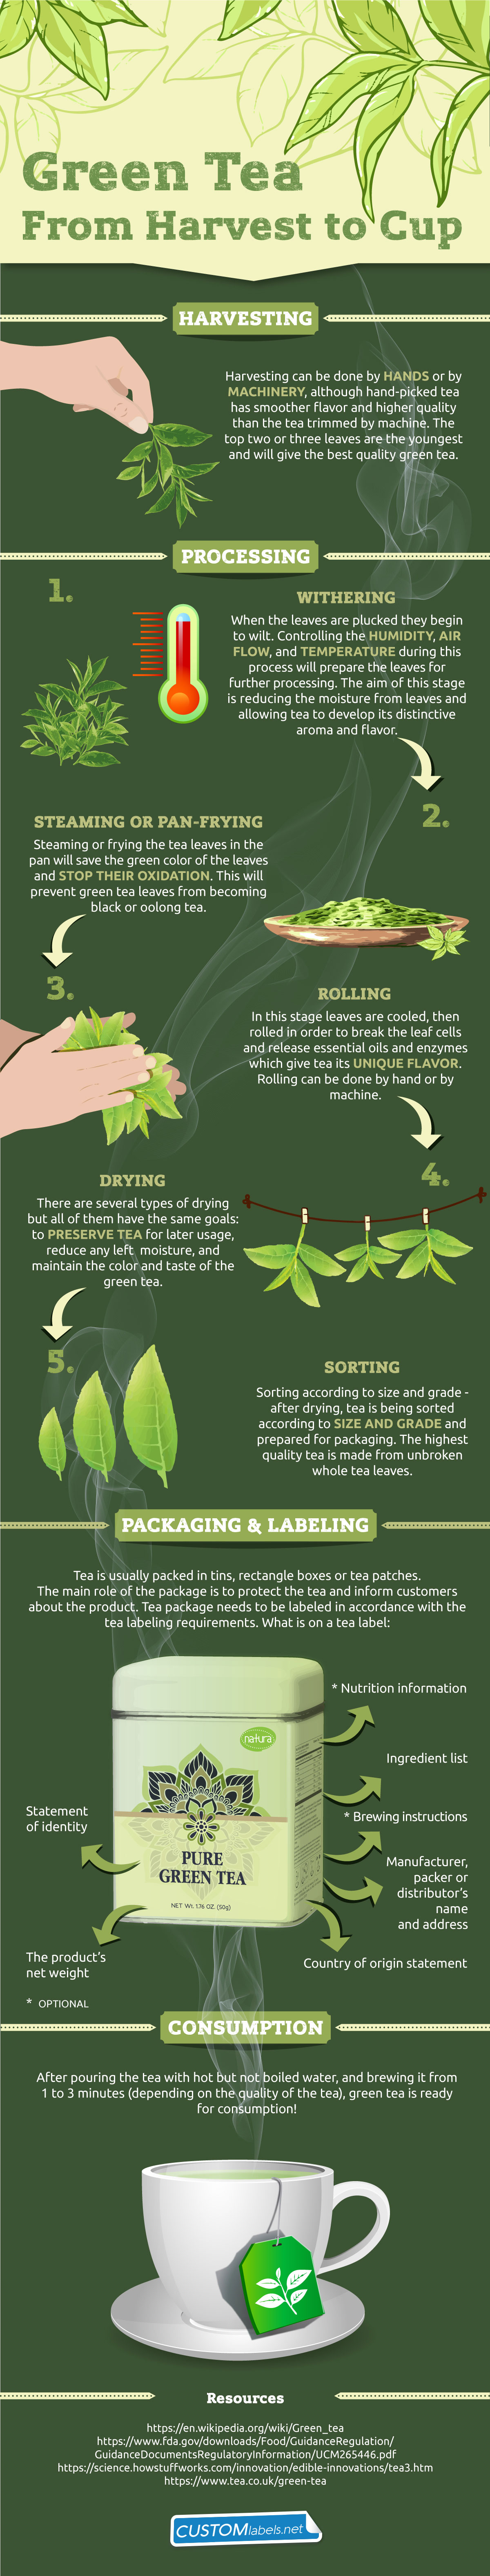 Green Tea Production Journey: From Harvest to Cup